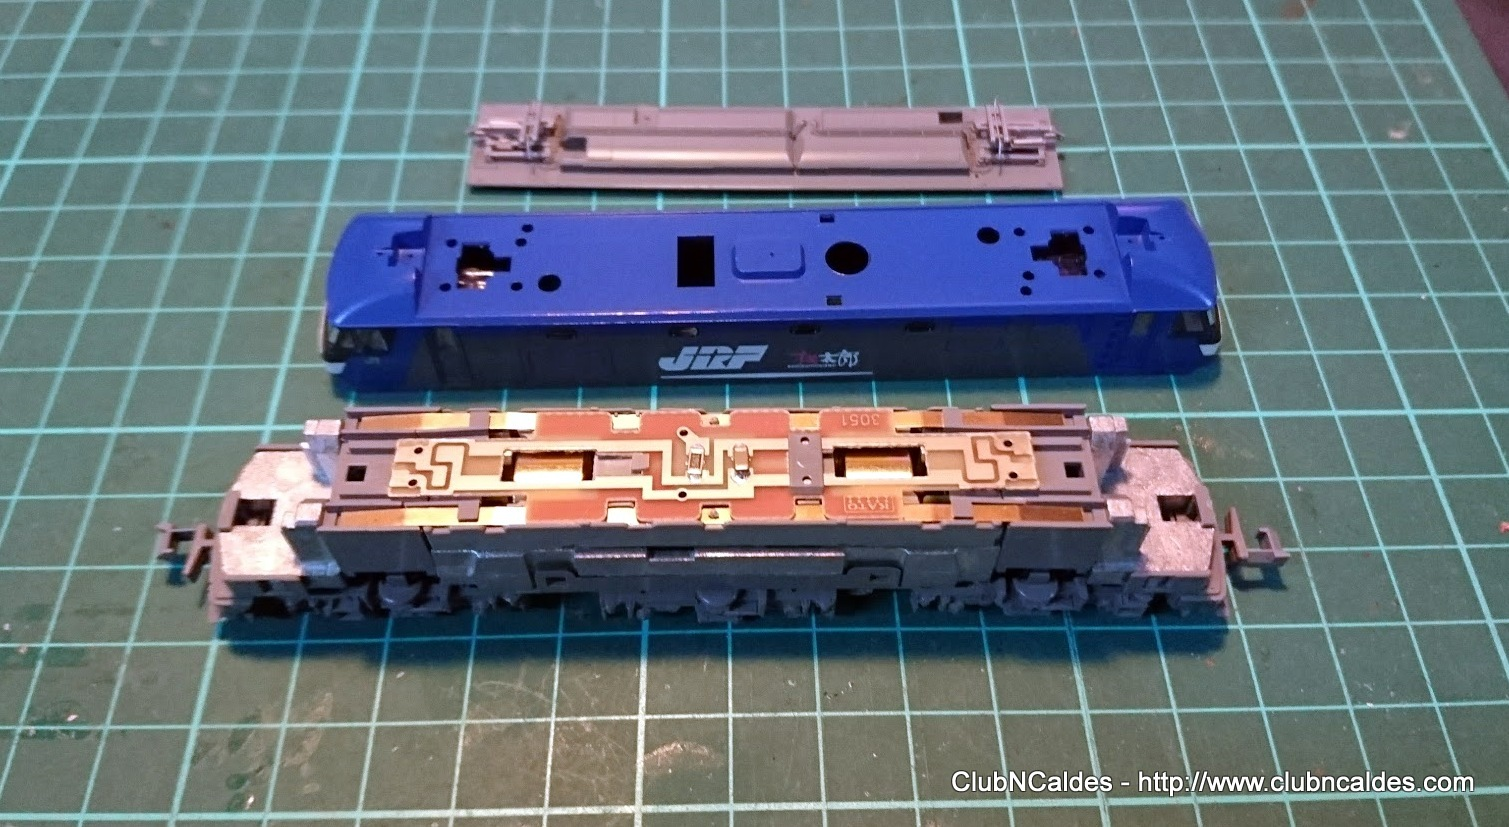 Club N Caldes Ef210 100 Kato 3034 3 Digitalization Dcc Track Wiring All Decoder Connections Will Be Done To The Board Except For Motor Plates Are At Level So There Is No Need Disassemble Locomotive